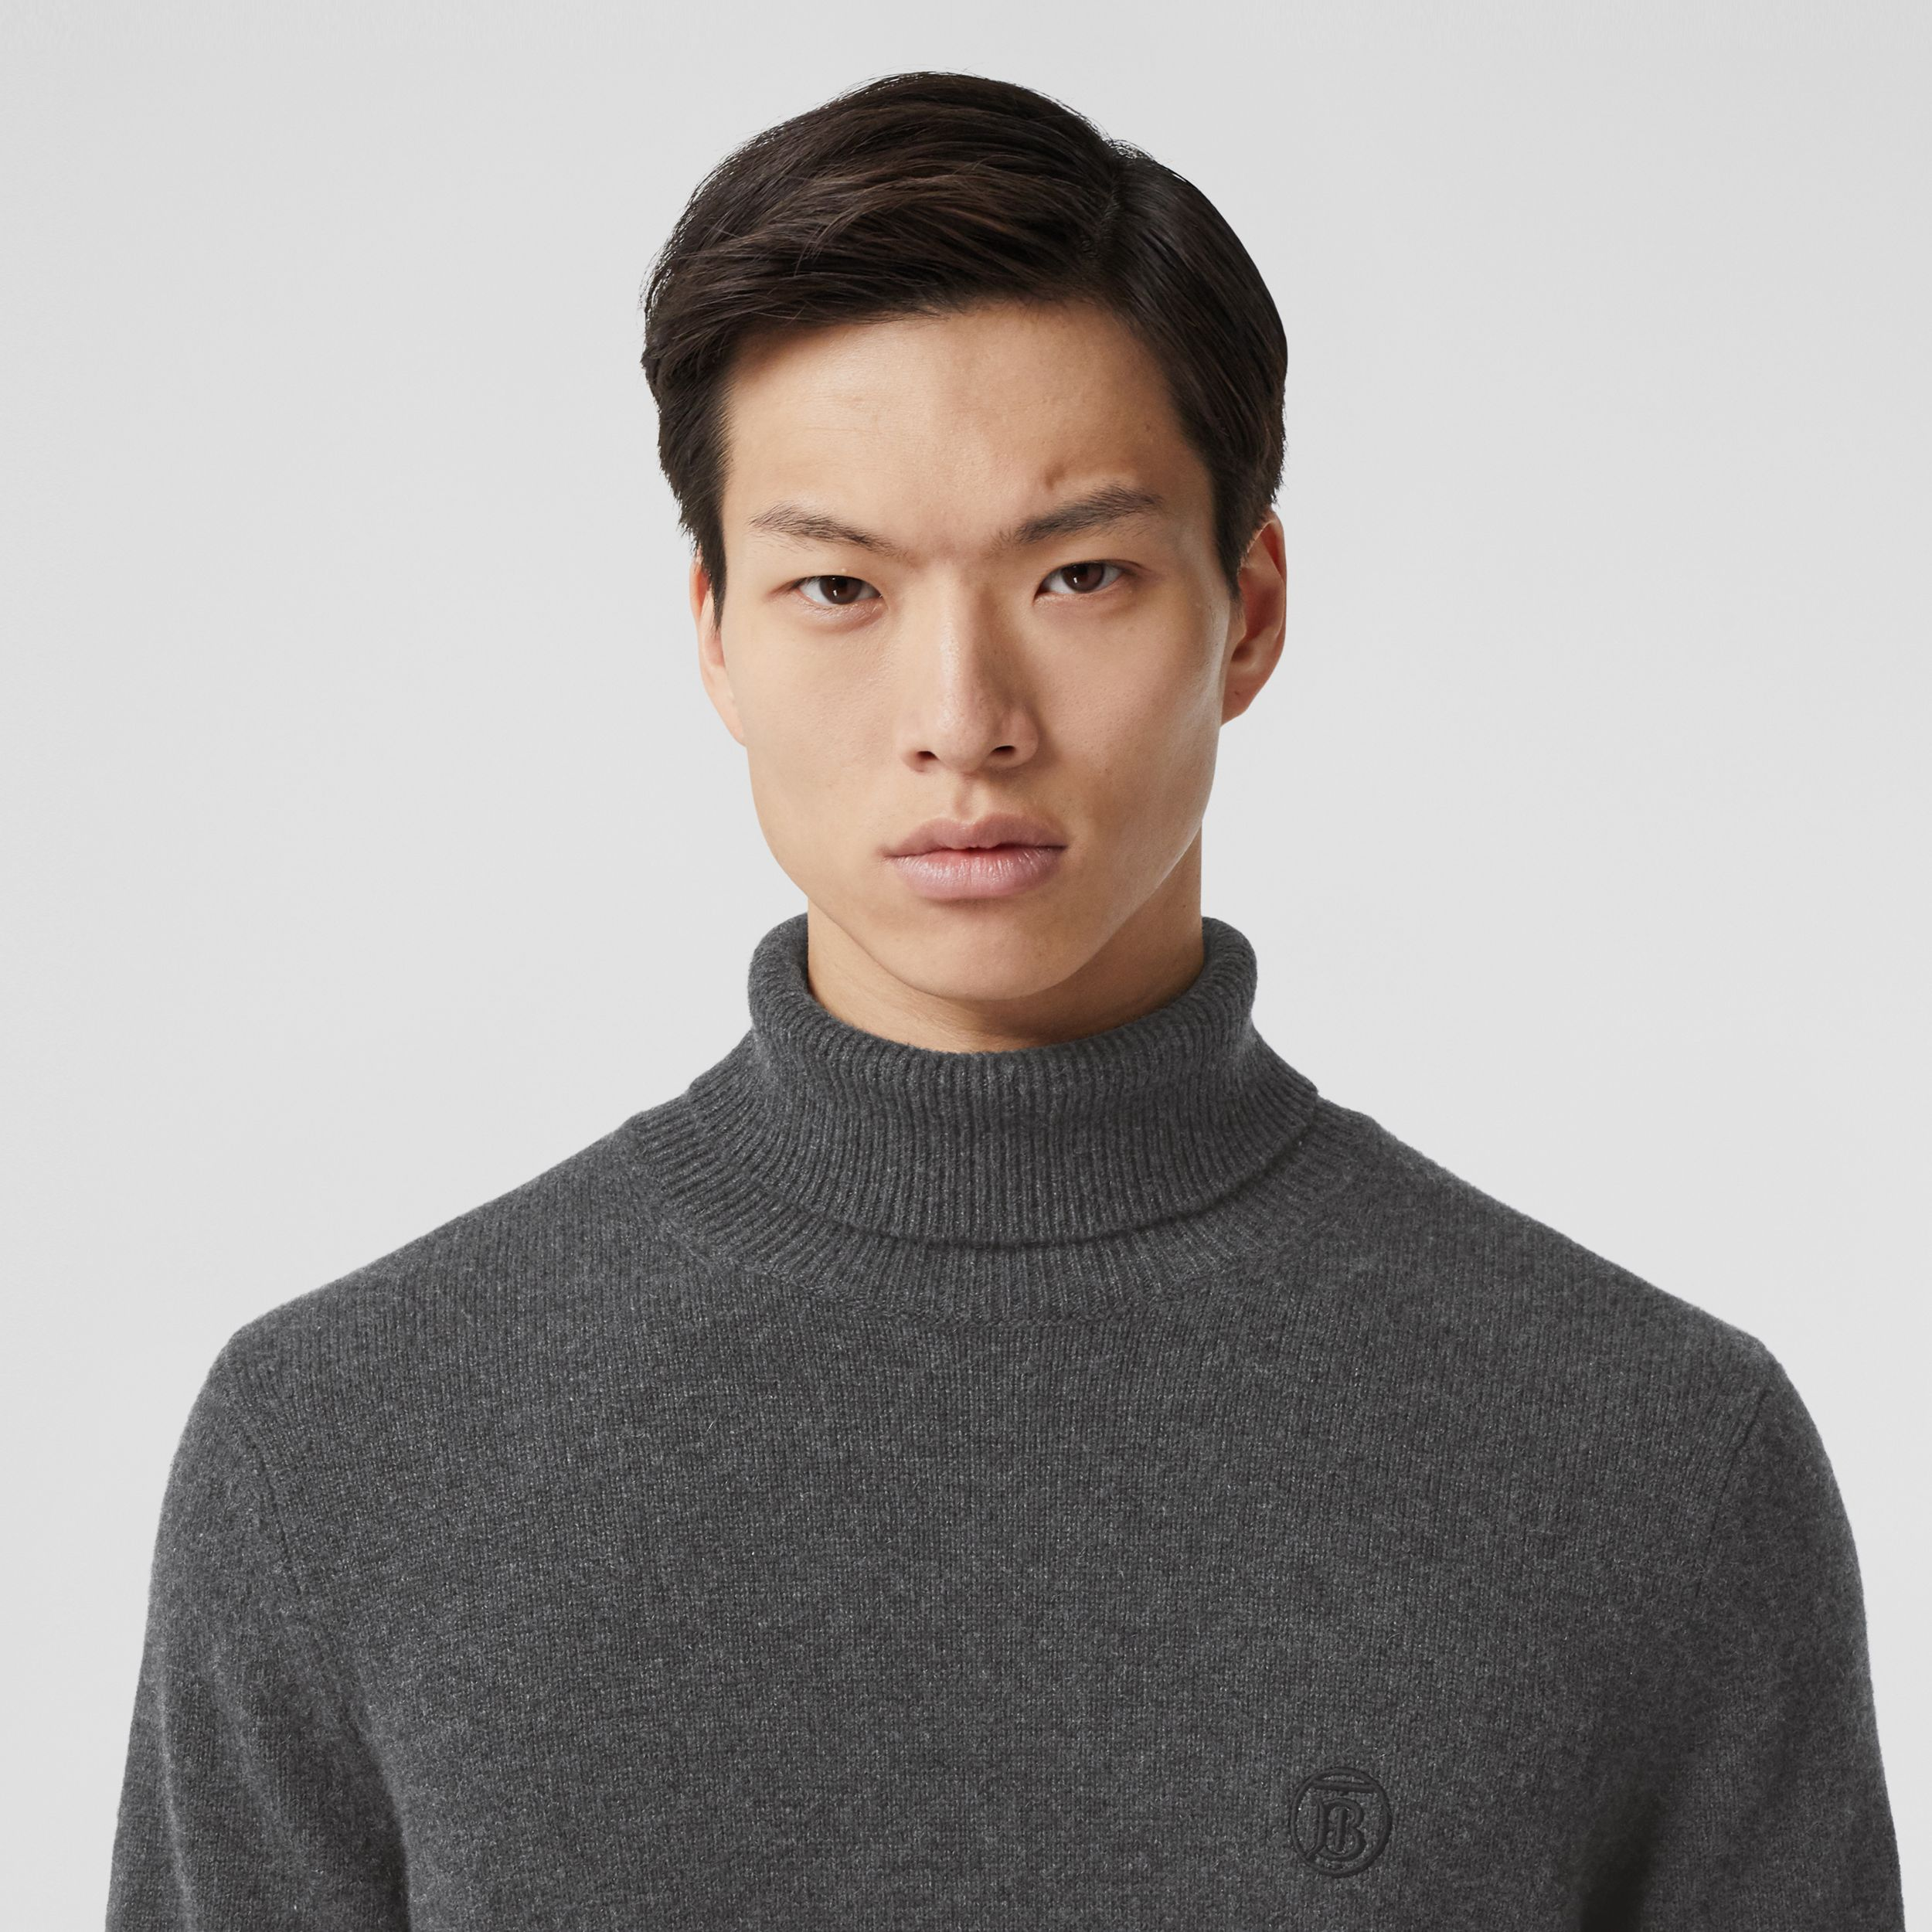 Monogram Motif Cashmere Roll-neck Sweater in Charcoal - Men | Burberry - 2